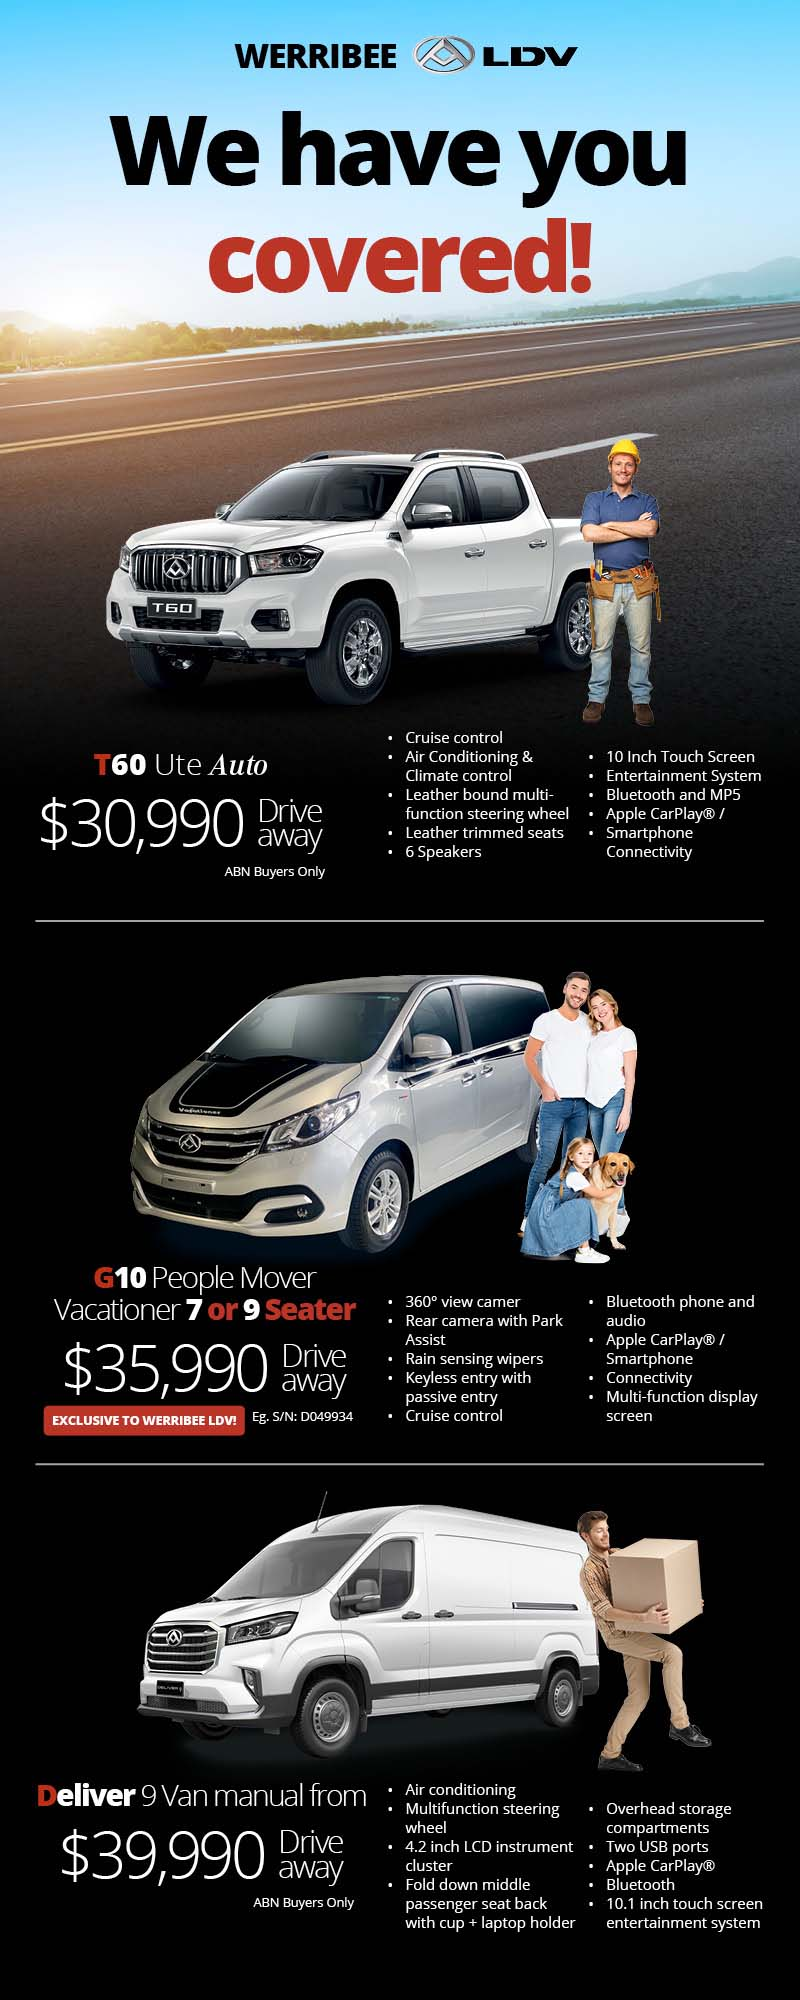 Werribee LDV - We Have You Covered!